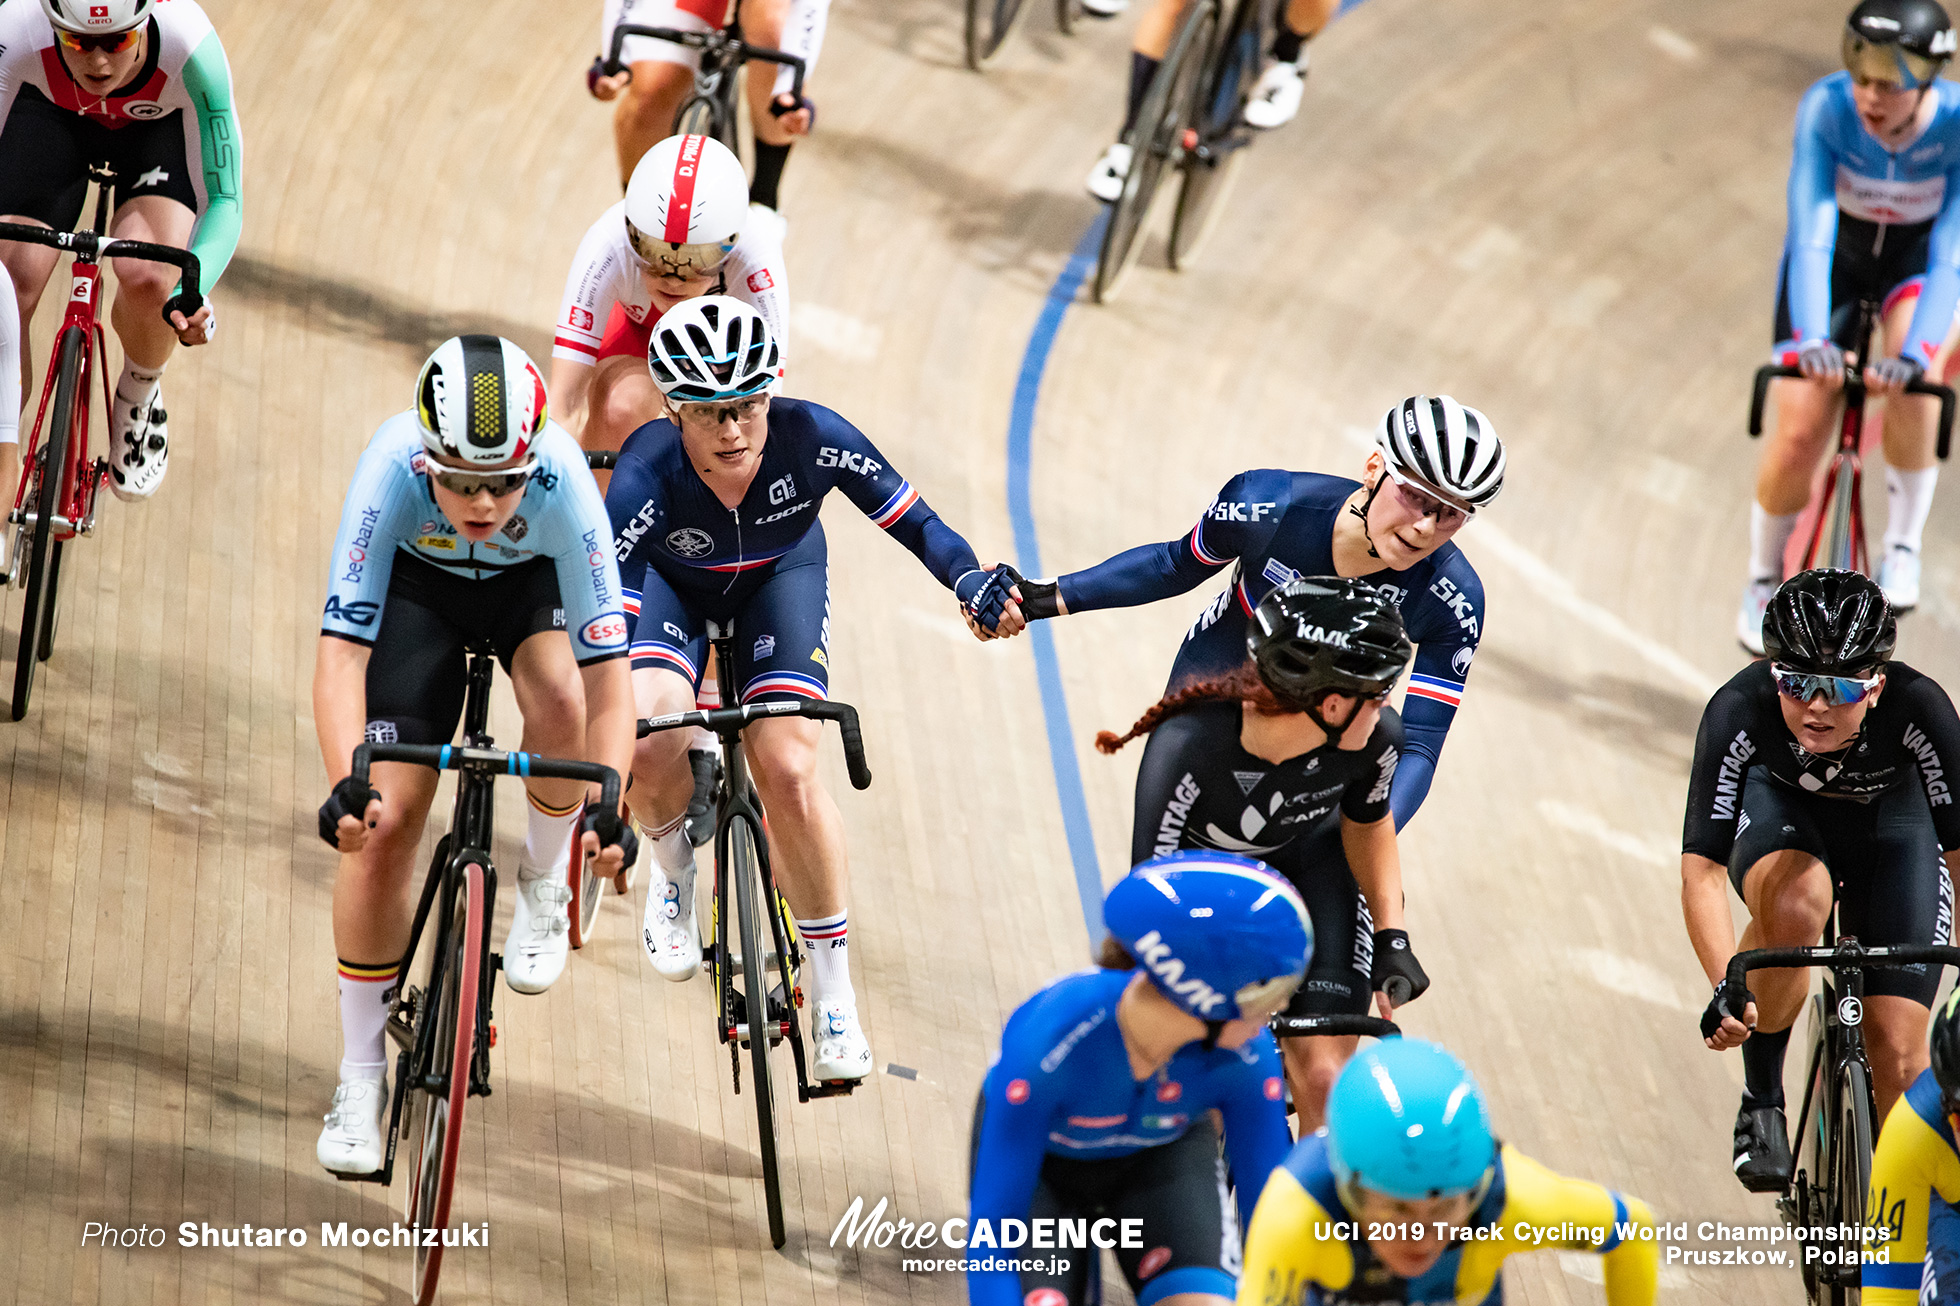 Women's Madison / 2019 Track Cycling World Championships Pruszków, Poland